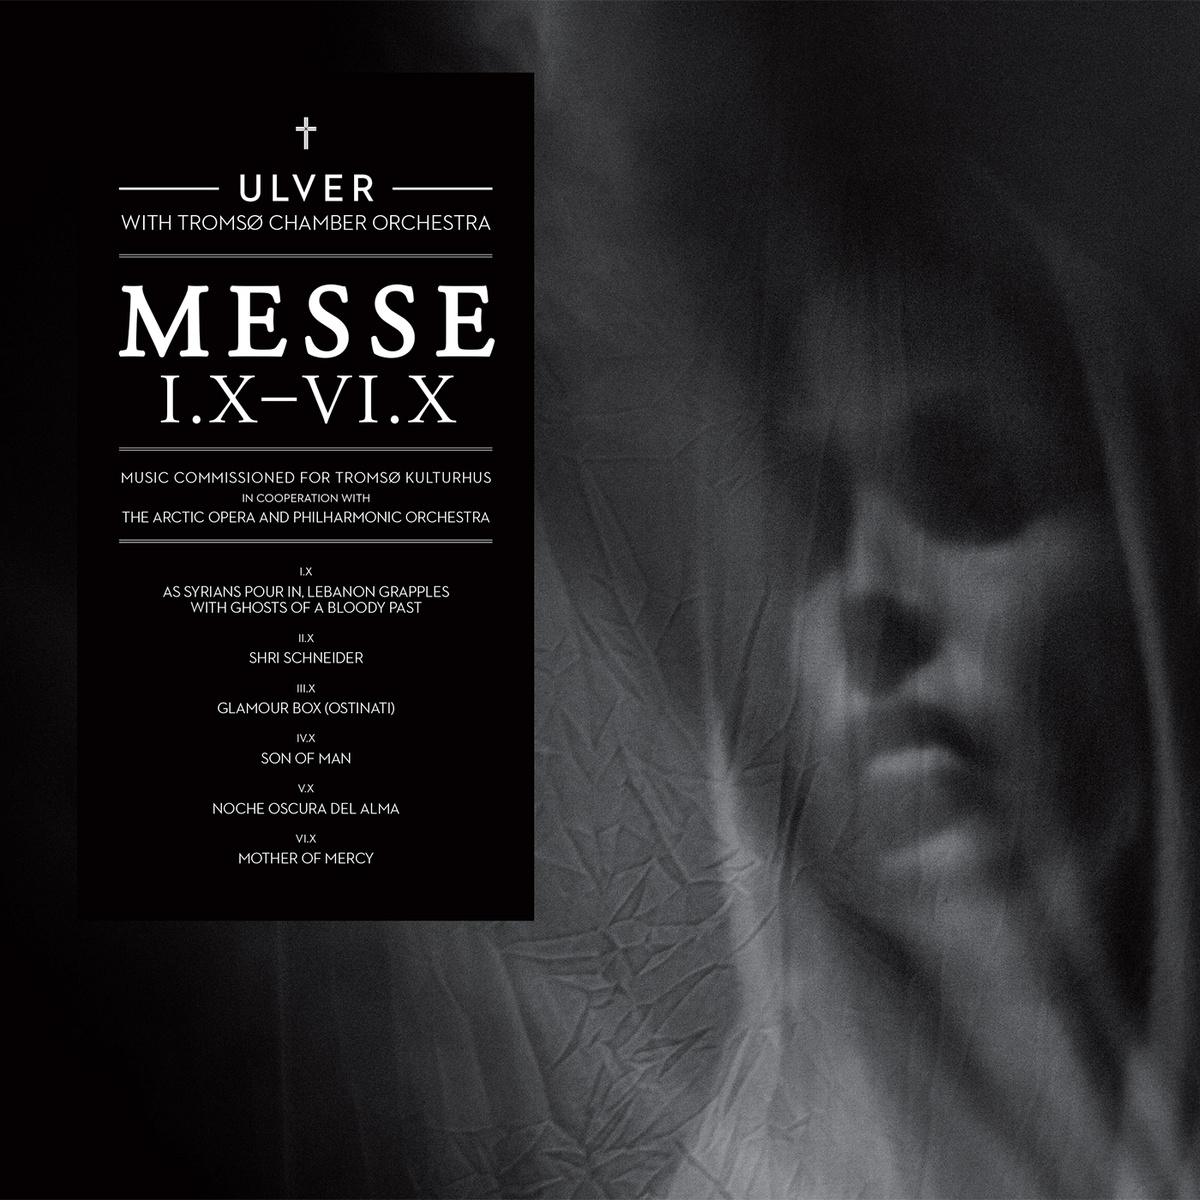 Ulver – Messe I.X-VI.X Released Today